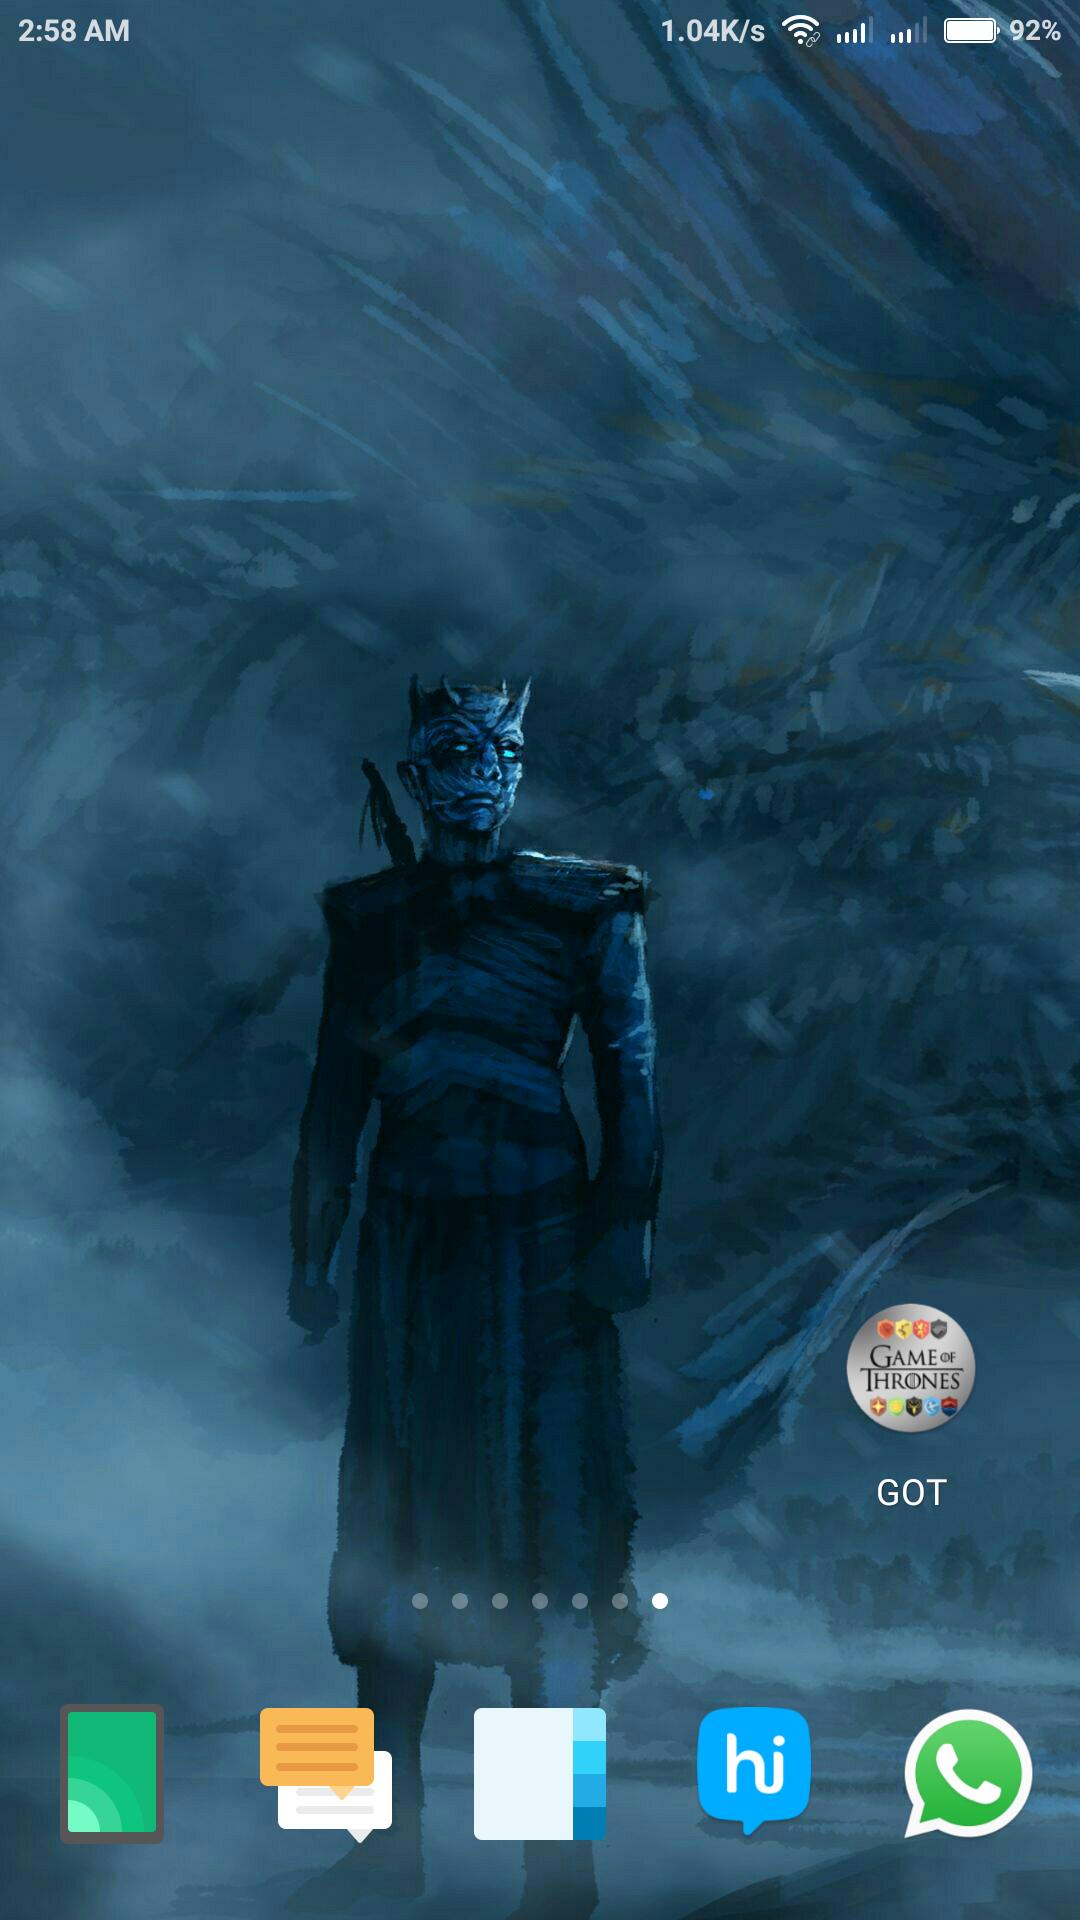 Got 2019 Hd Wallpapers Game Of Thrones 2019 For Android